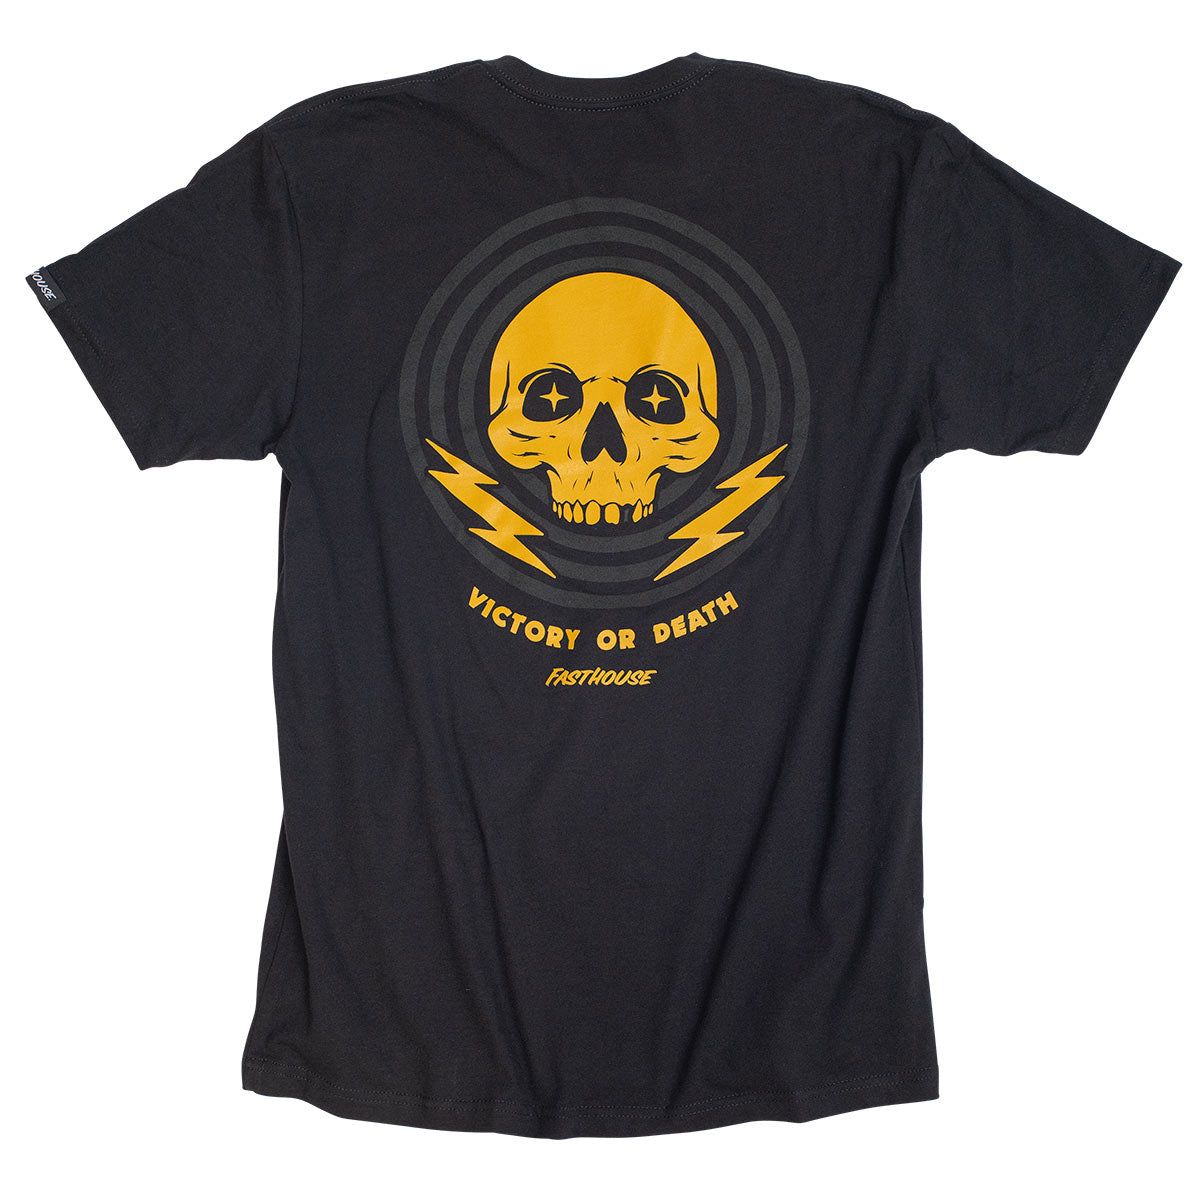 Victory or Death Tee - Black